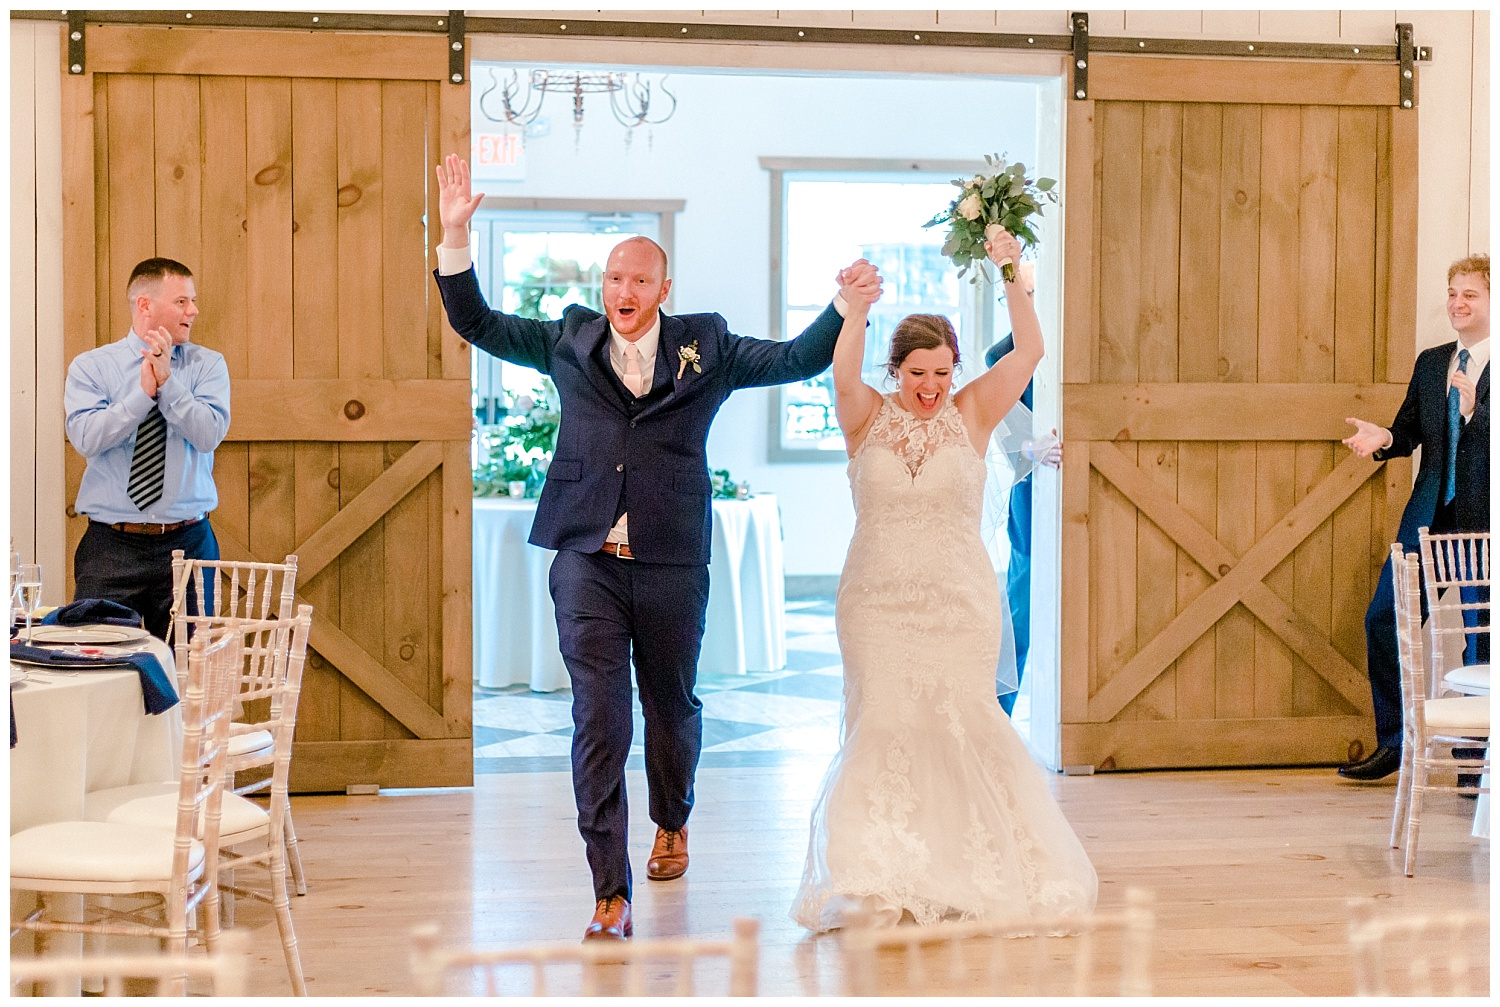 Navy and Blush pink inspired summertime whitewoods wedding in Northeastern Pennsylvania NEPA wapwallopen wedding venue by  PA based wedding and lifestyle photographer Lytle photography_0047.jpg